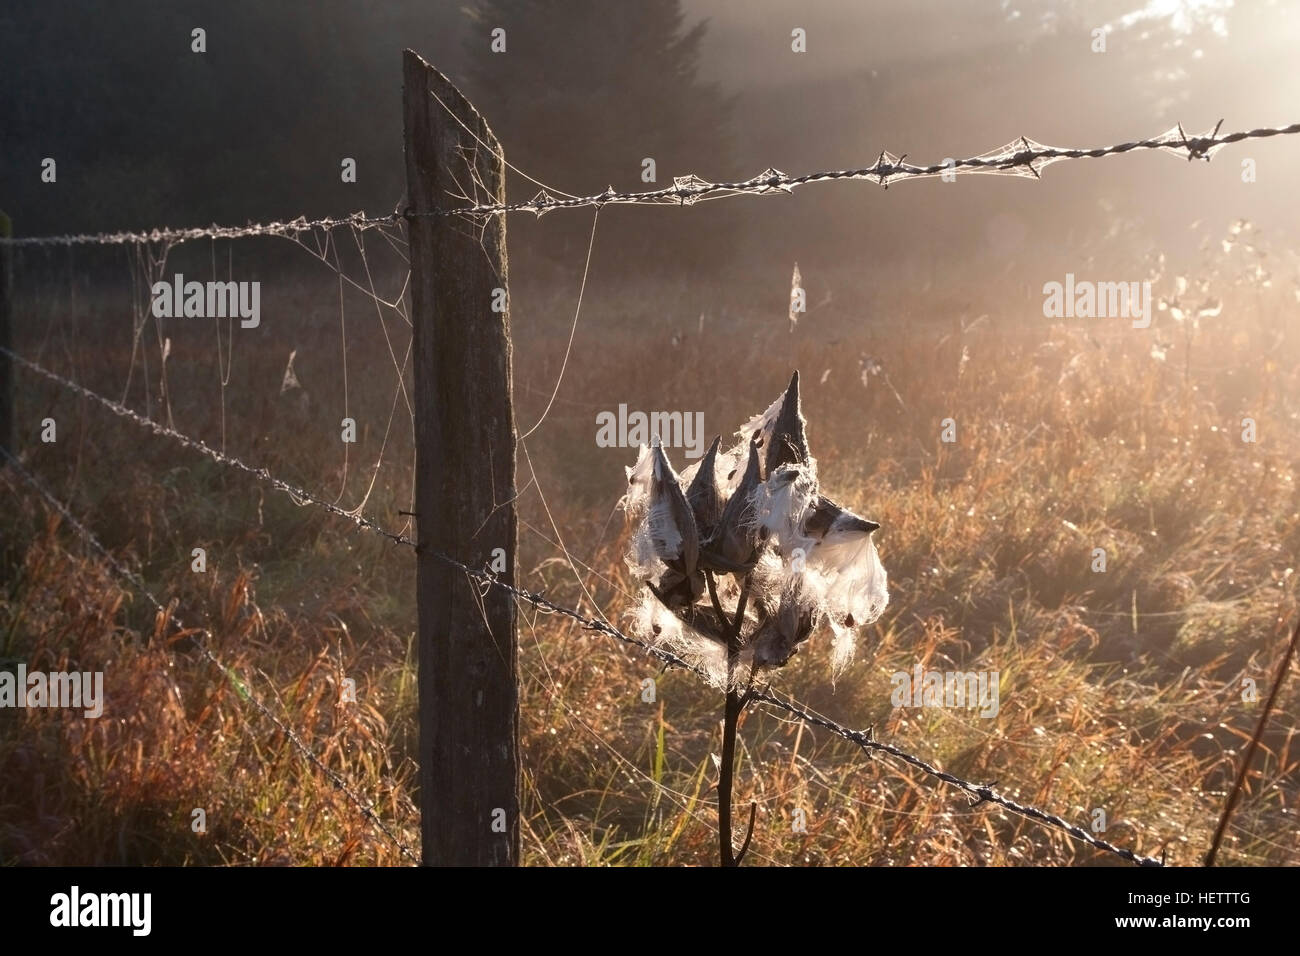 Barb wire fence with backlit cobwebs and milkweed - Stock Image